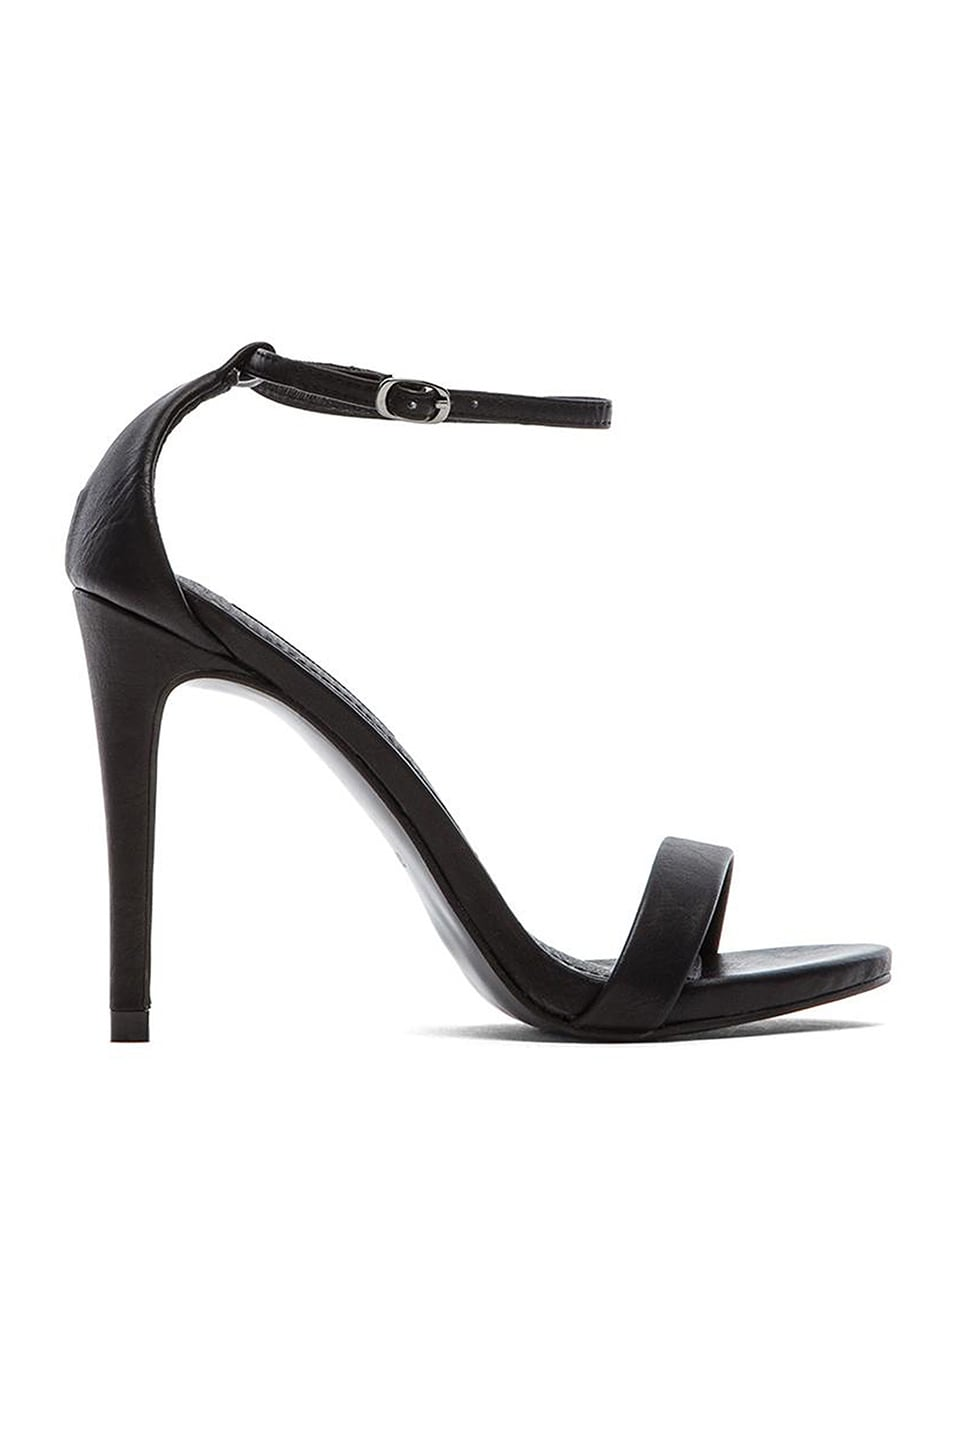 Steve Madden Stecy Heel in Black